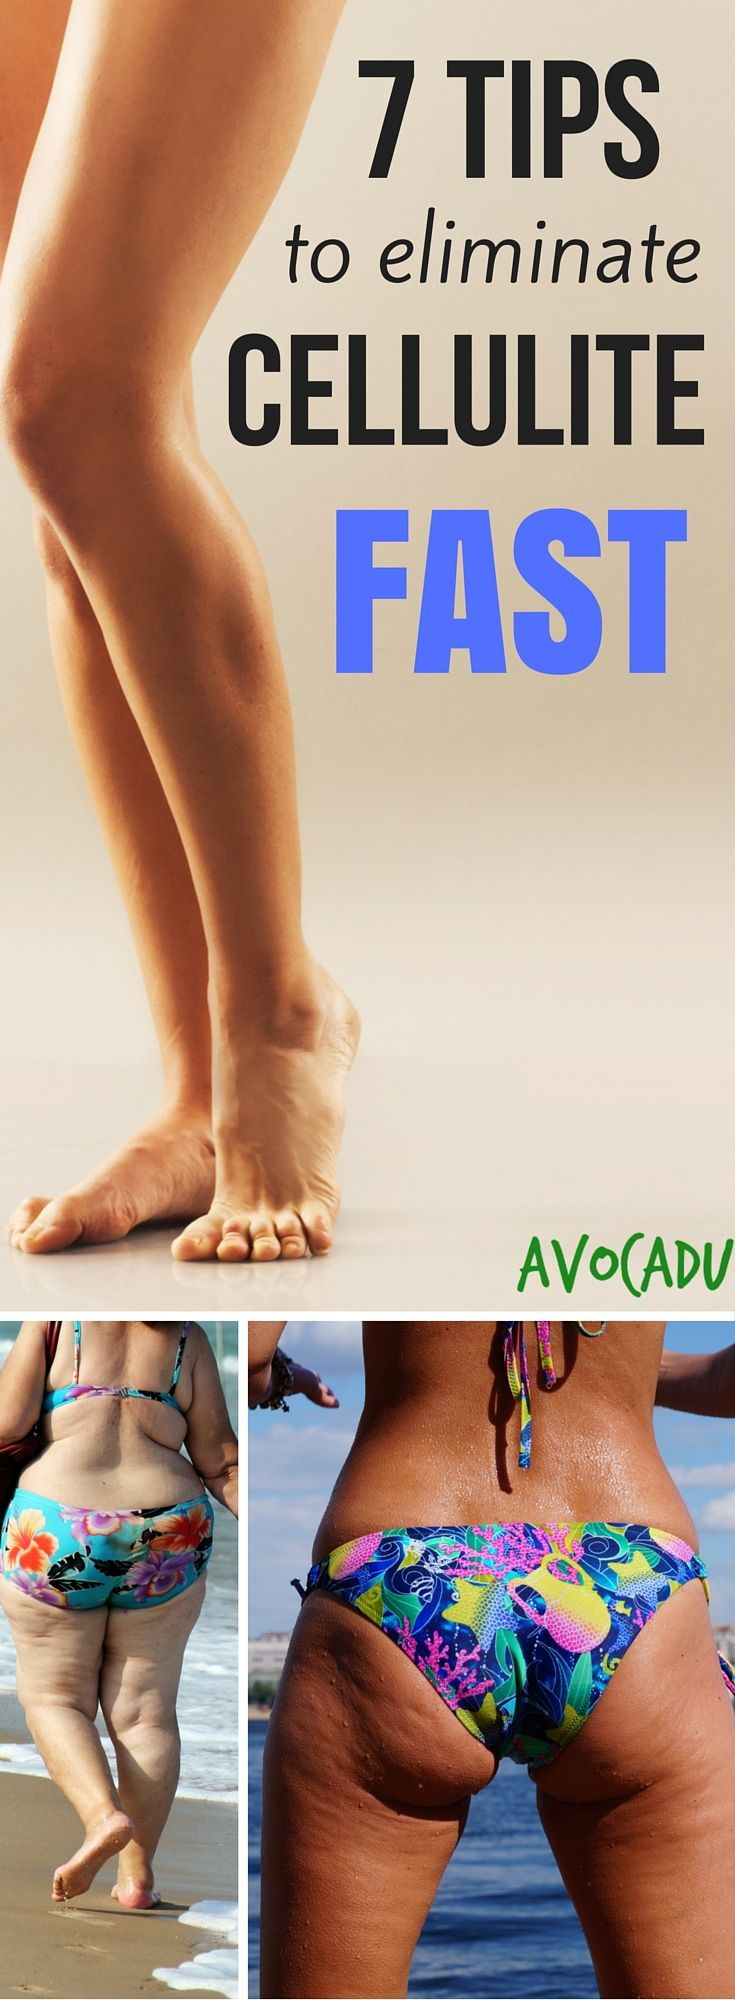 Unfortunately, cellulite is a very common problem women face. While genetics and other factors come into play, there is no woman who cannot get rid of it. With the right plan, cellulite is actually reversible! http://avocadu.com/7-effective-tips-get-rid-cellulite-fast/